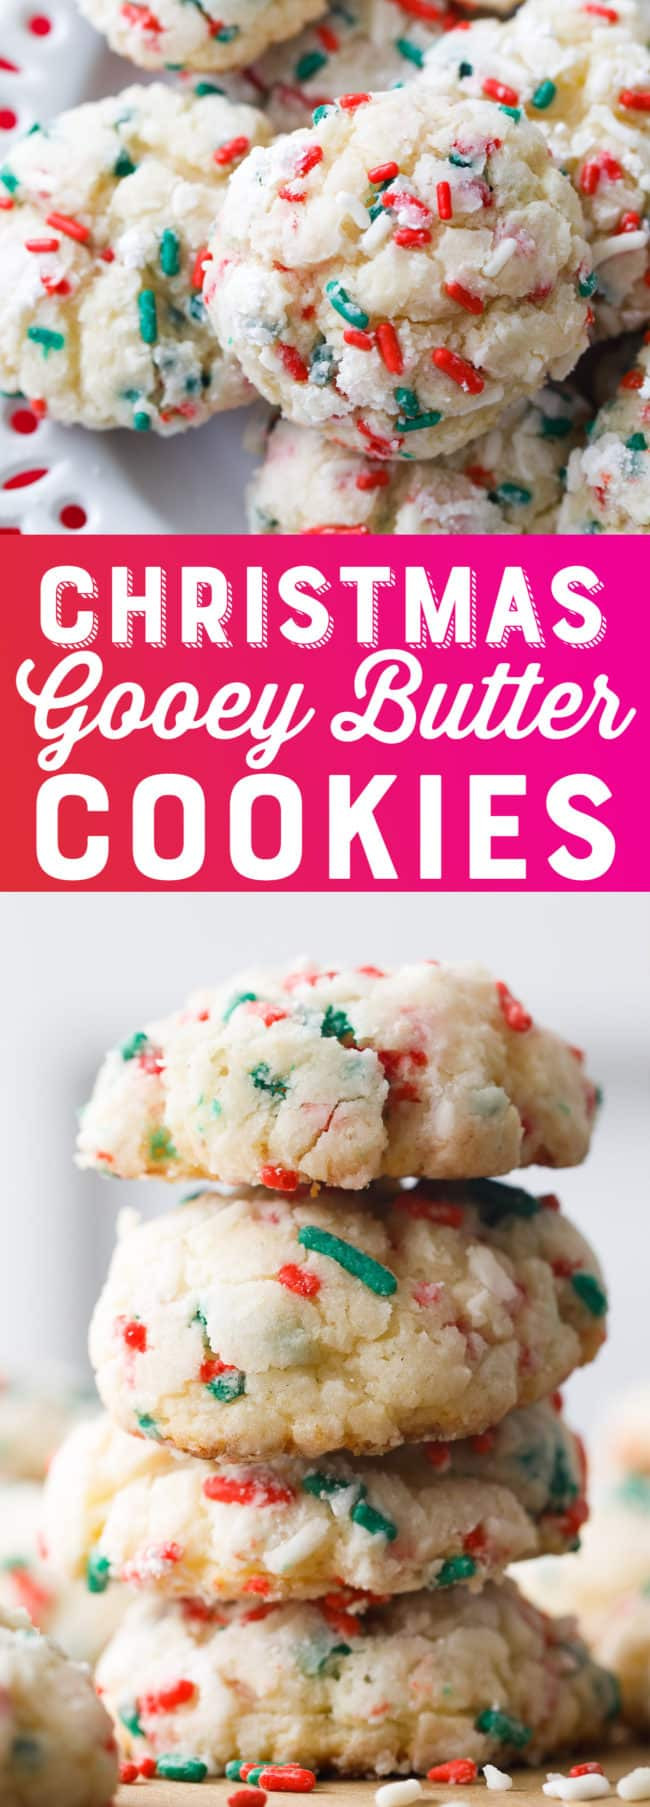 Christmas Gooey Butter Cookies  Christmas Gooey Butter Cookies Recipe Gooey Butter